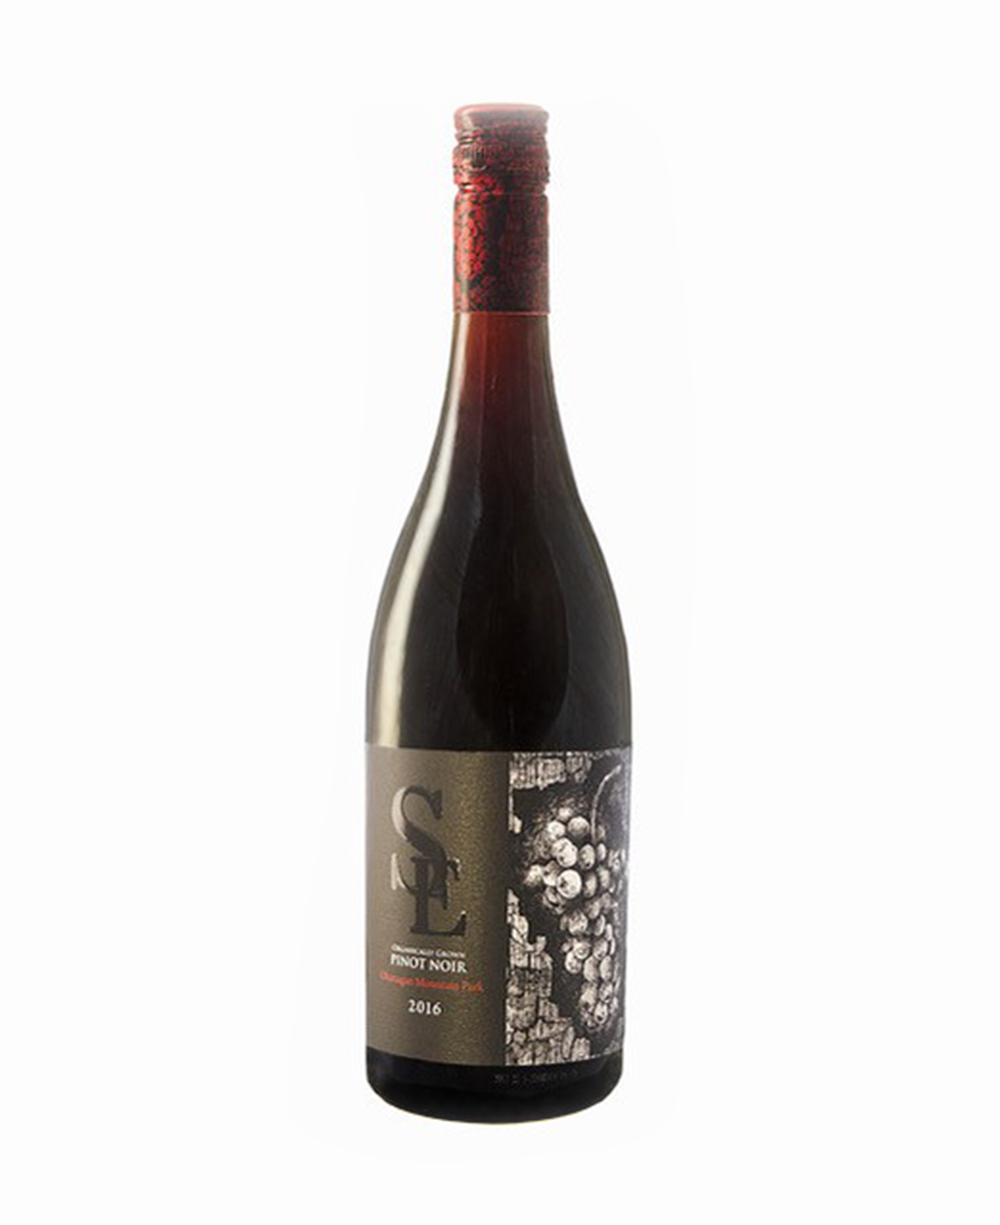 Scorched Earth Pinot Noir 2016